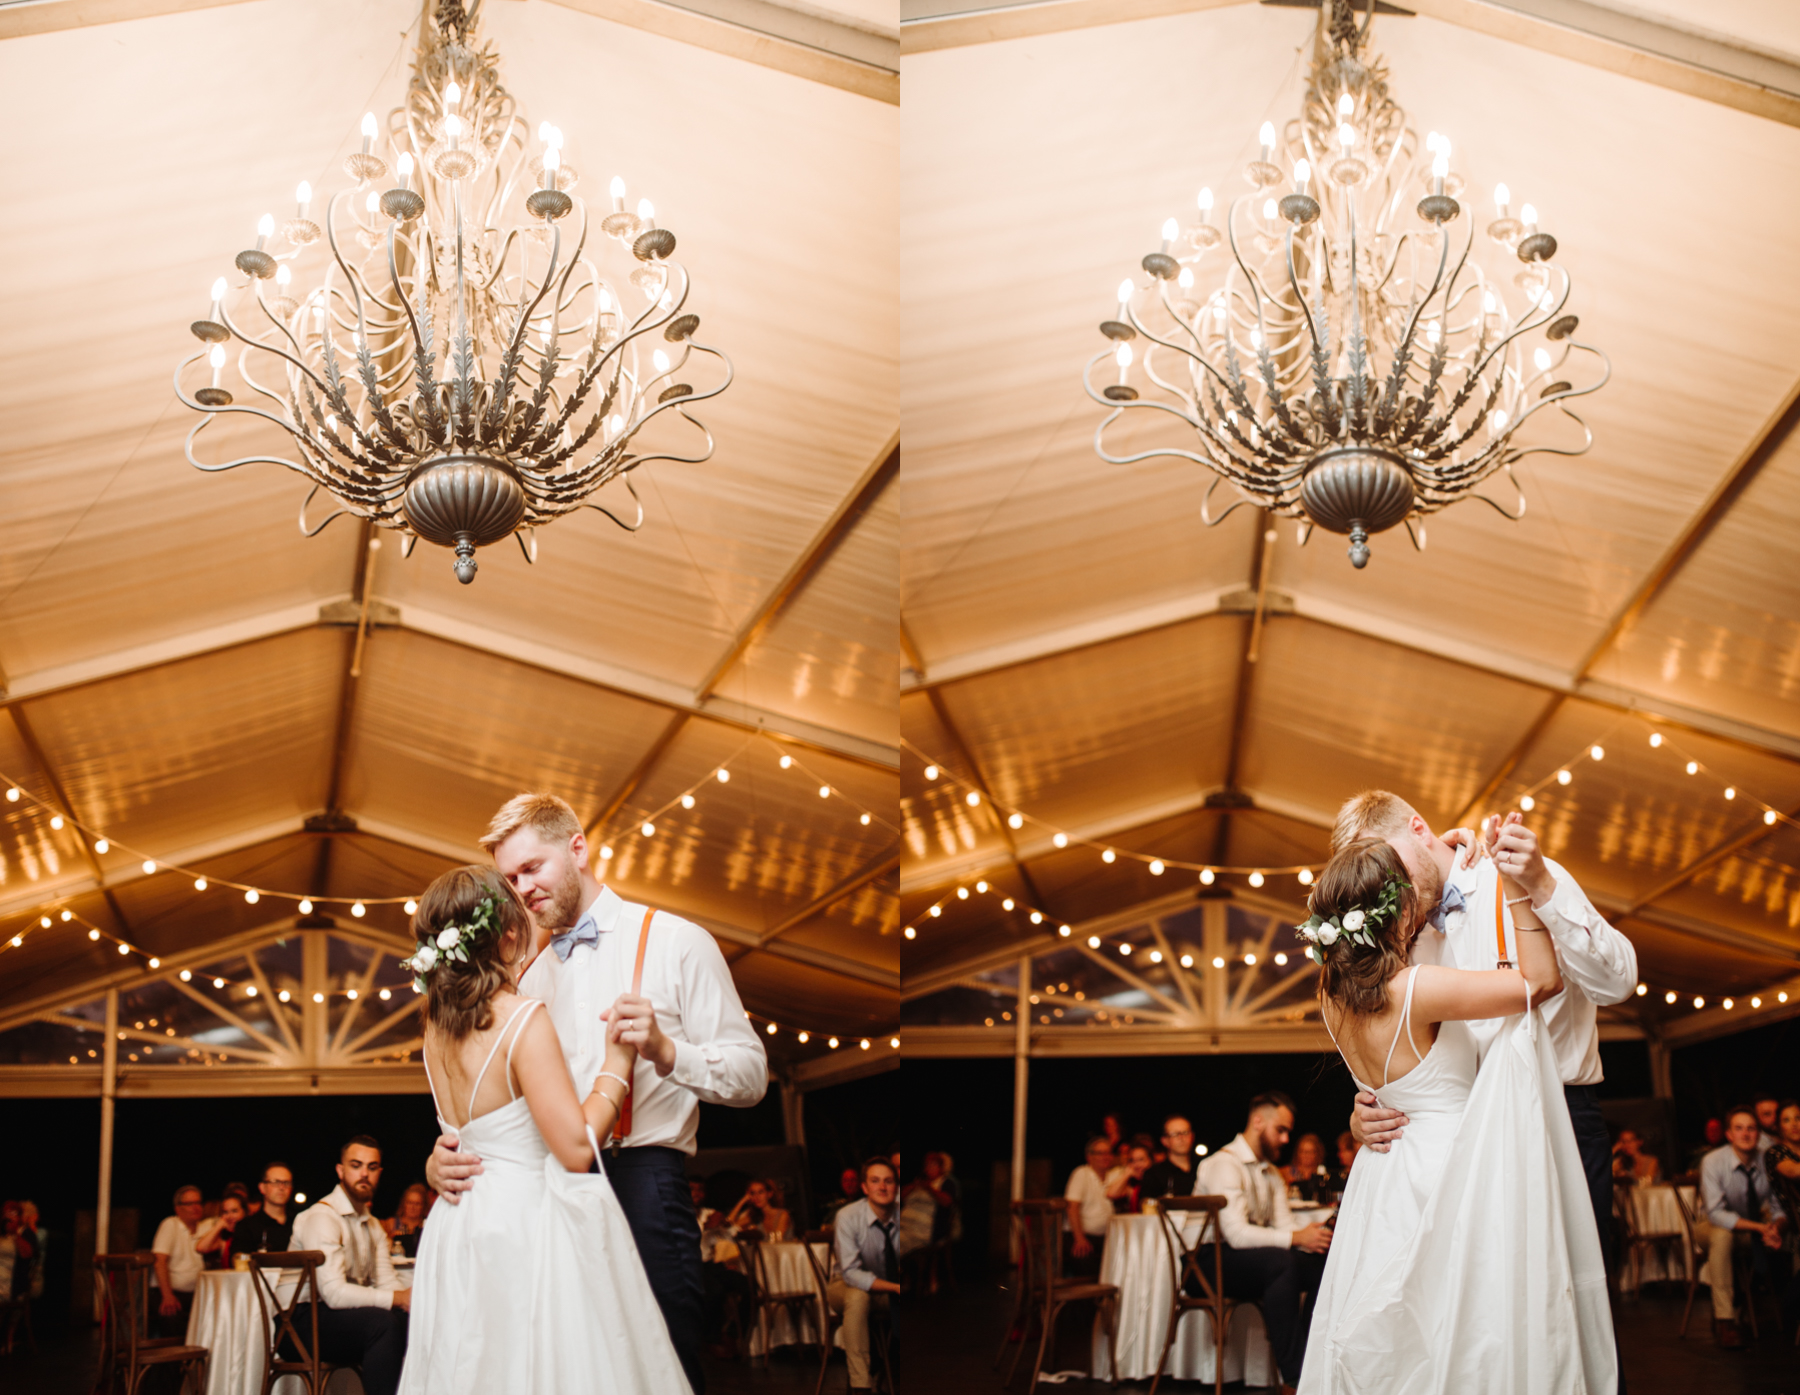 First dance at a Sunny summer wedding at Dara's Garden in Knoxville, Tennessee